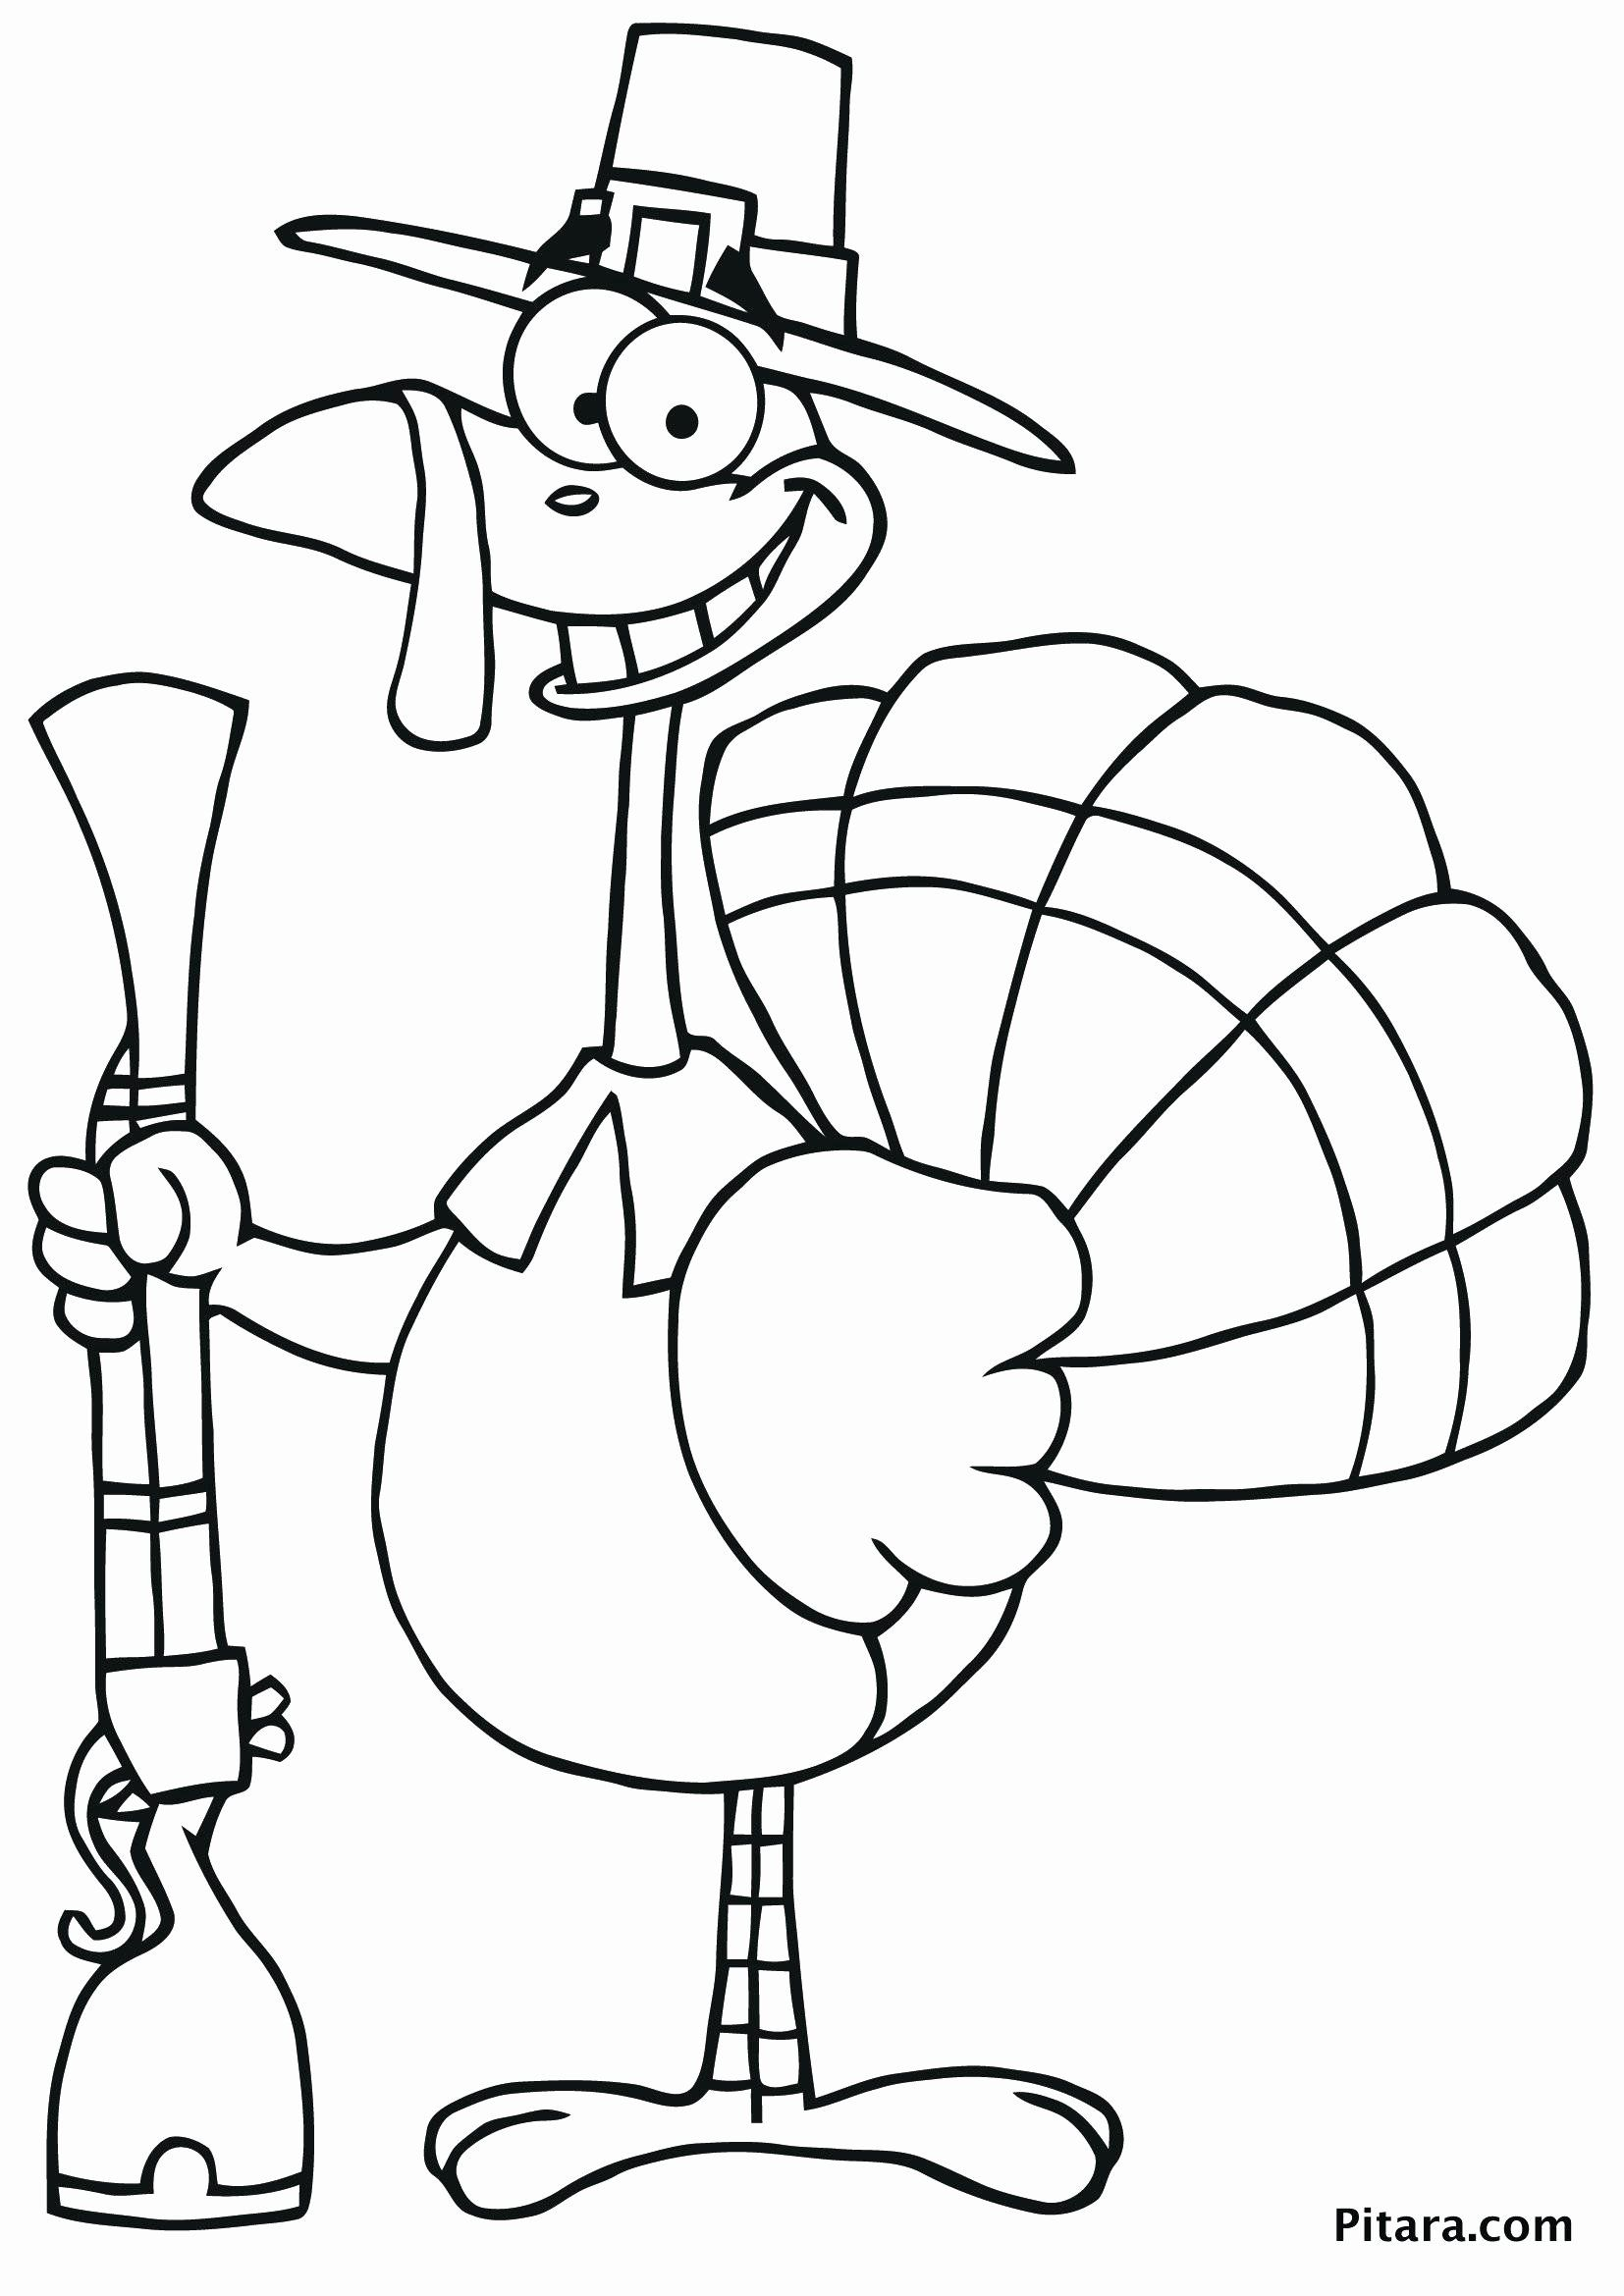 Funny Turkey Coloring Pages Elegant Pilgrim Child Coloring